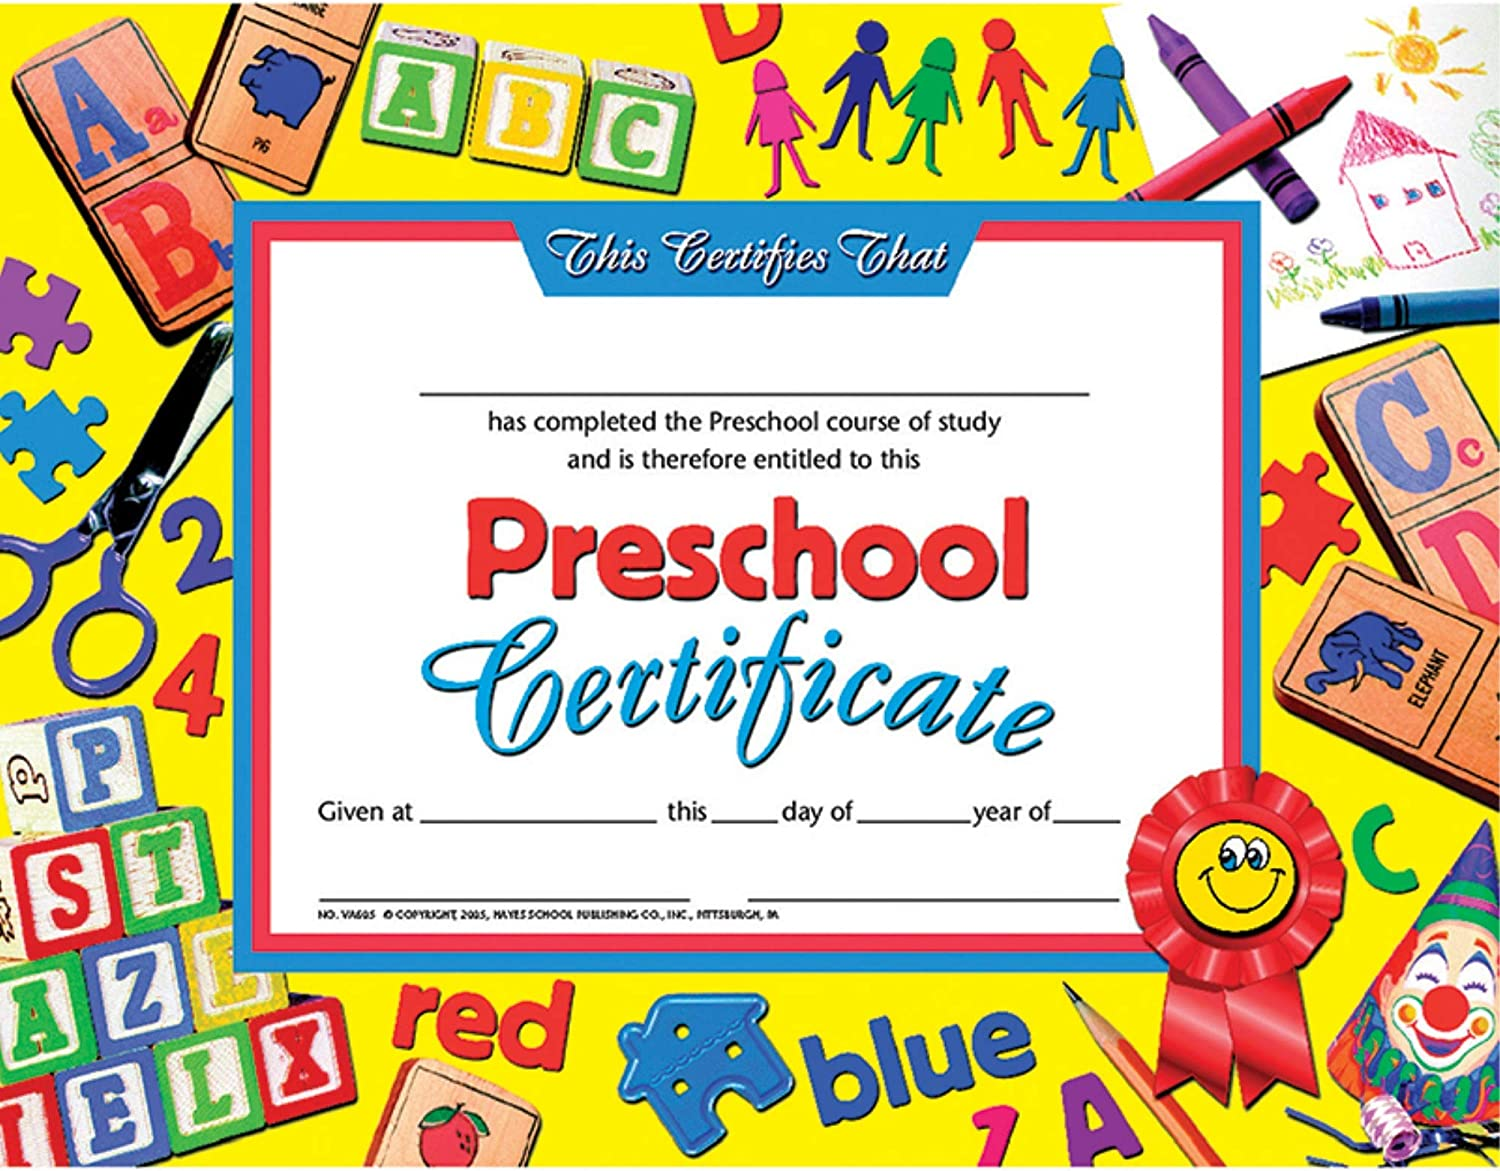 Amazon Com Hayes Preschool Certificate 8 5 X 11 Pack Of 30 Blank Business Gift Certificates Office Products